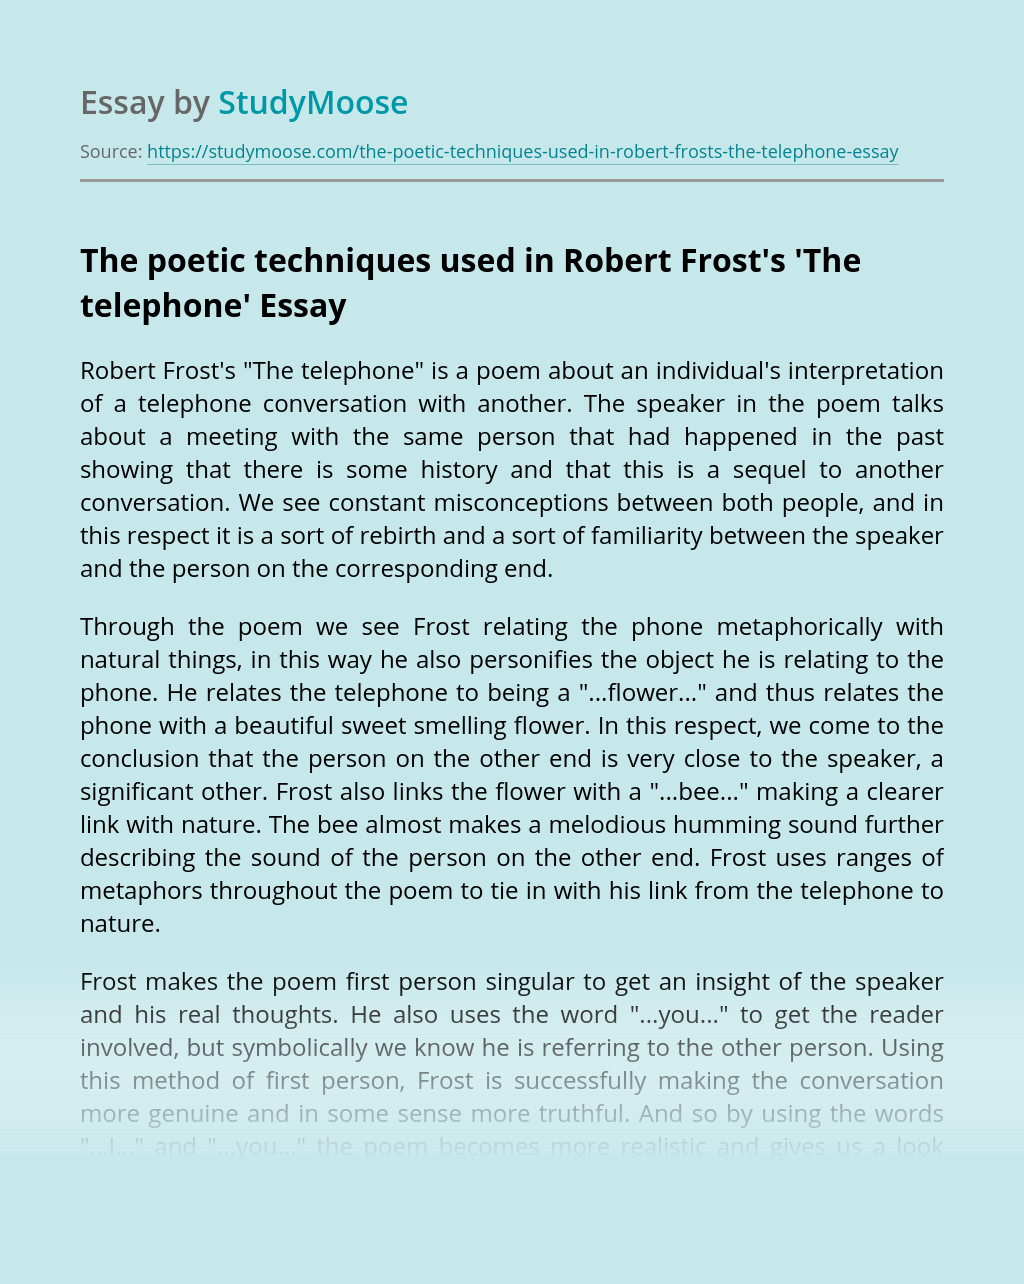 The poetic techniques used in Robert Frost's 'The telephone'